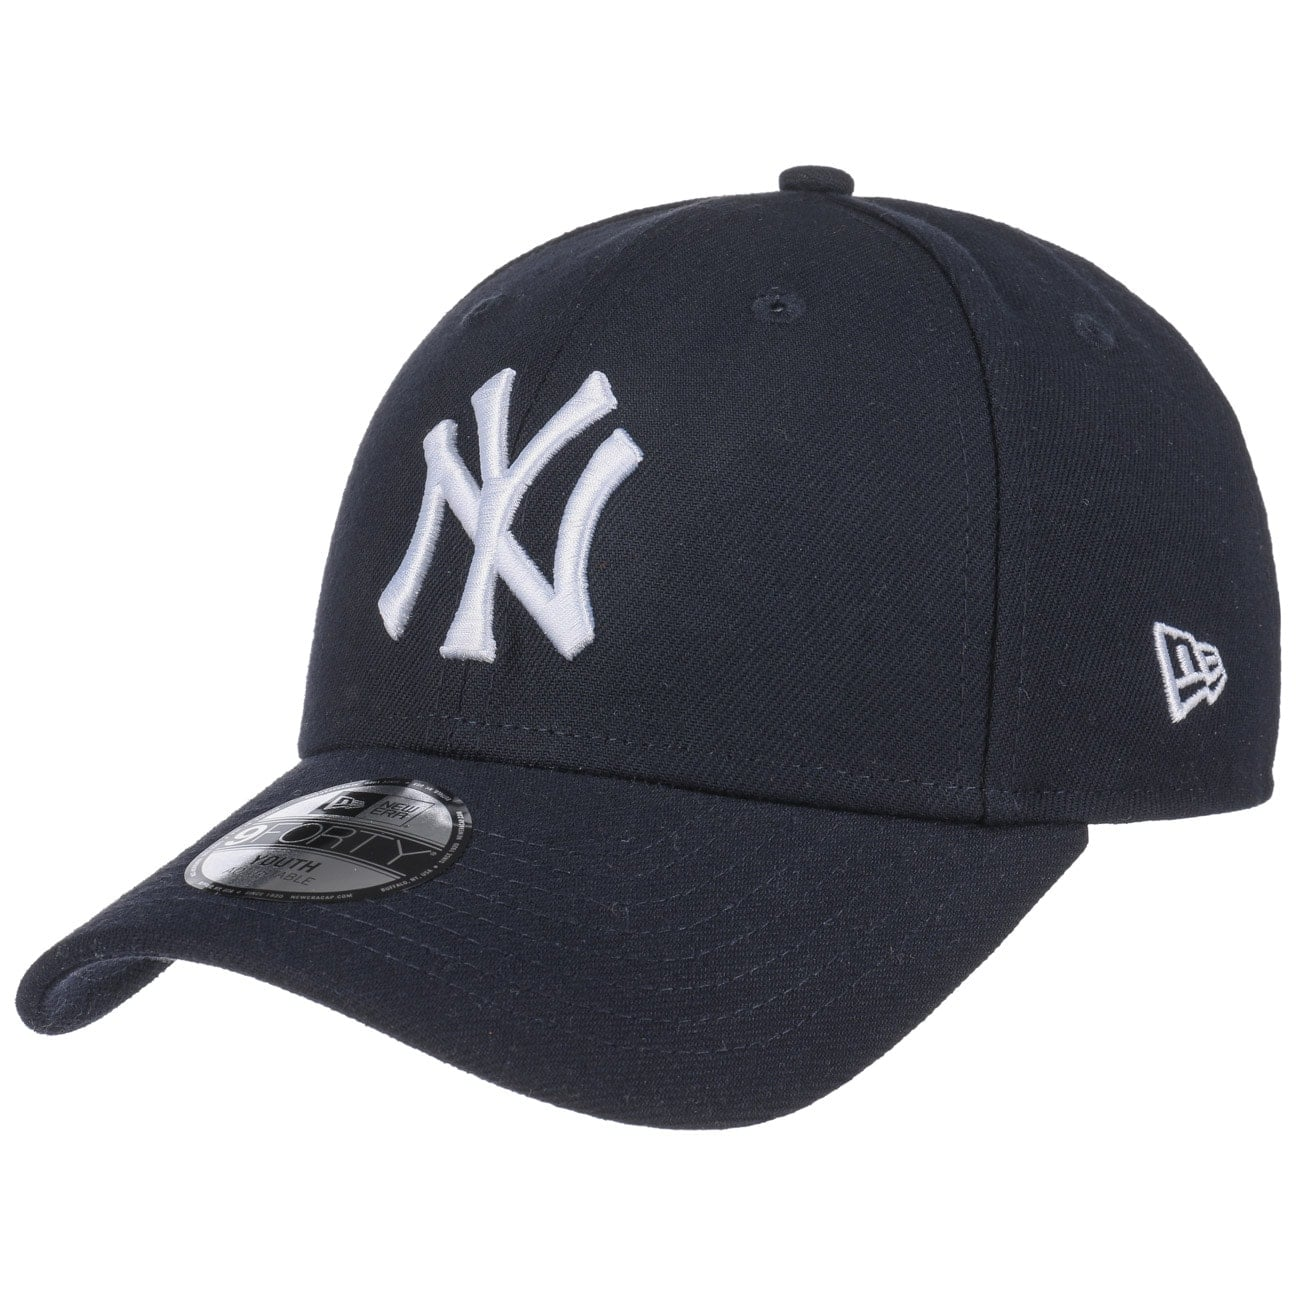 Casquette 9Forty Junior Yankees by New Era  baseball cap